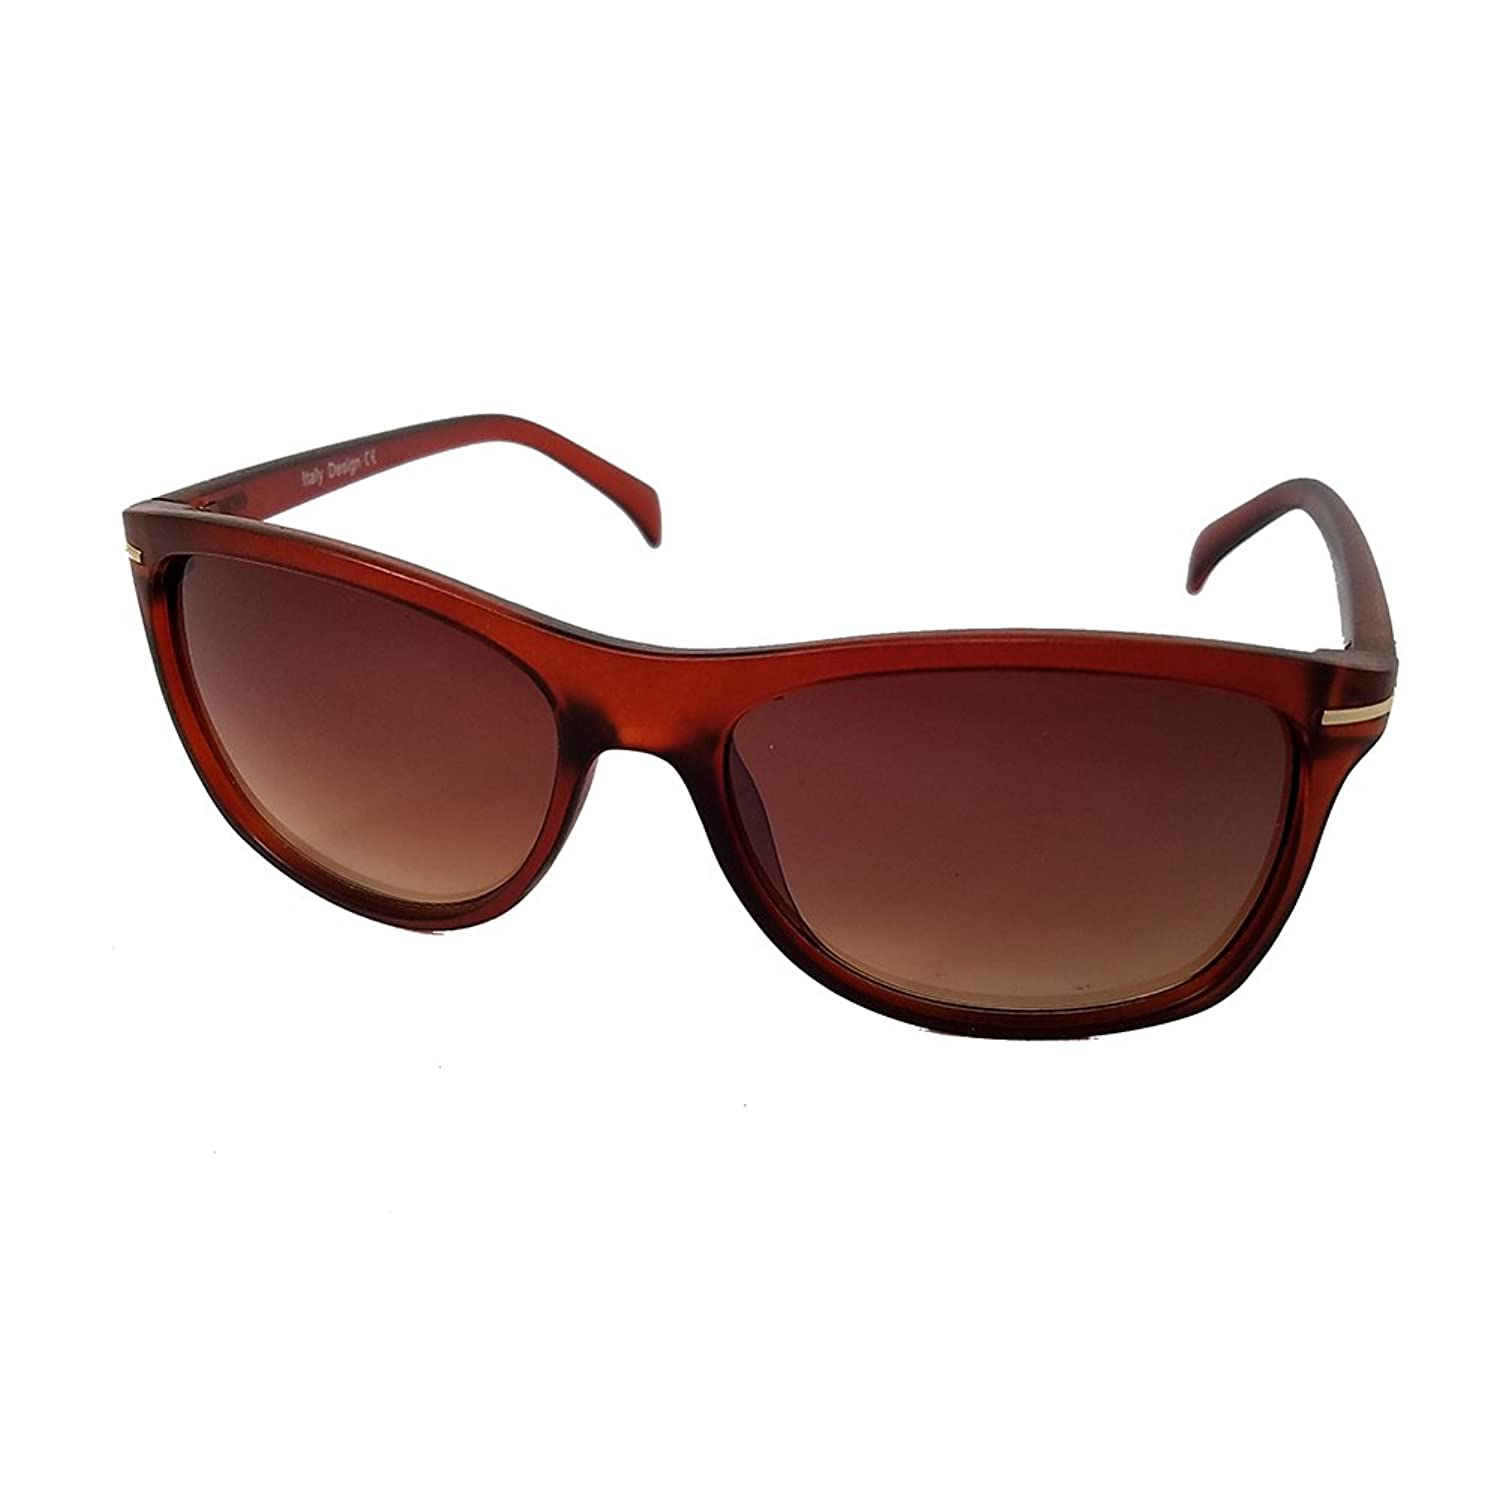 AnL Vision Italy Design Fashion Sunglasses For Women Men and Teens